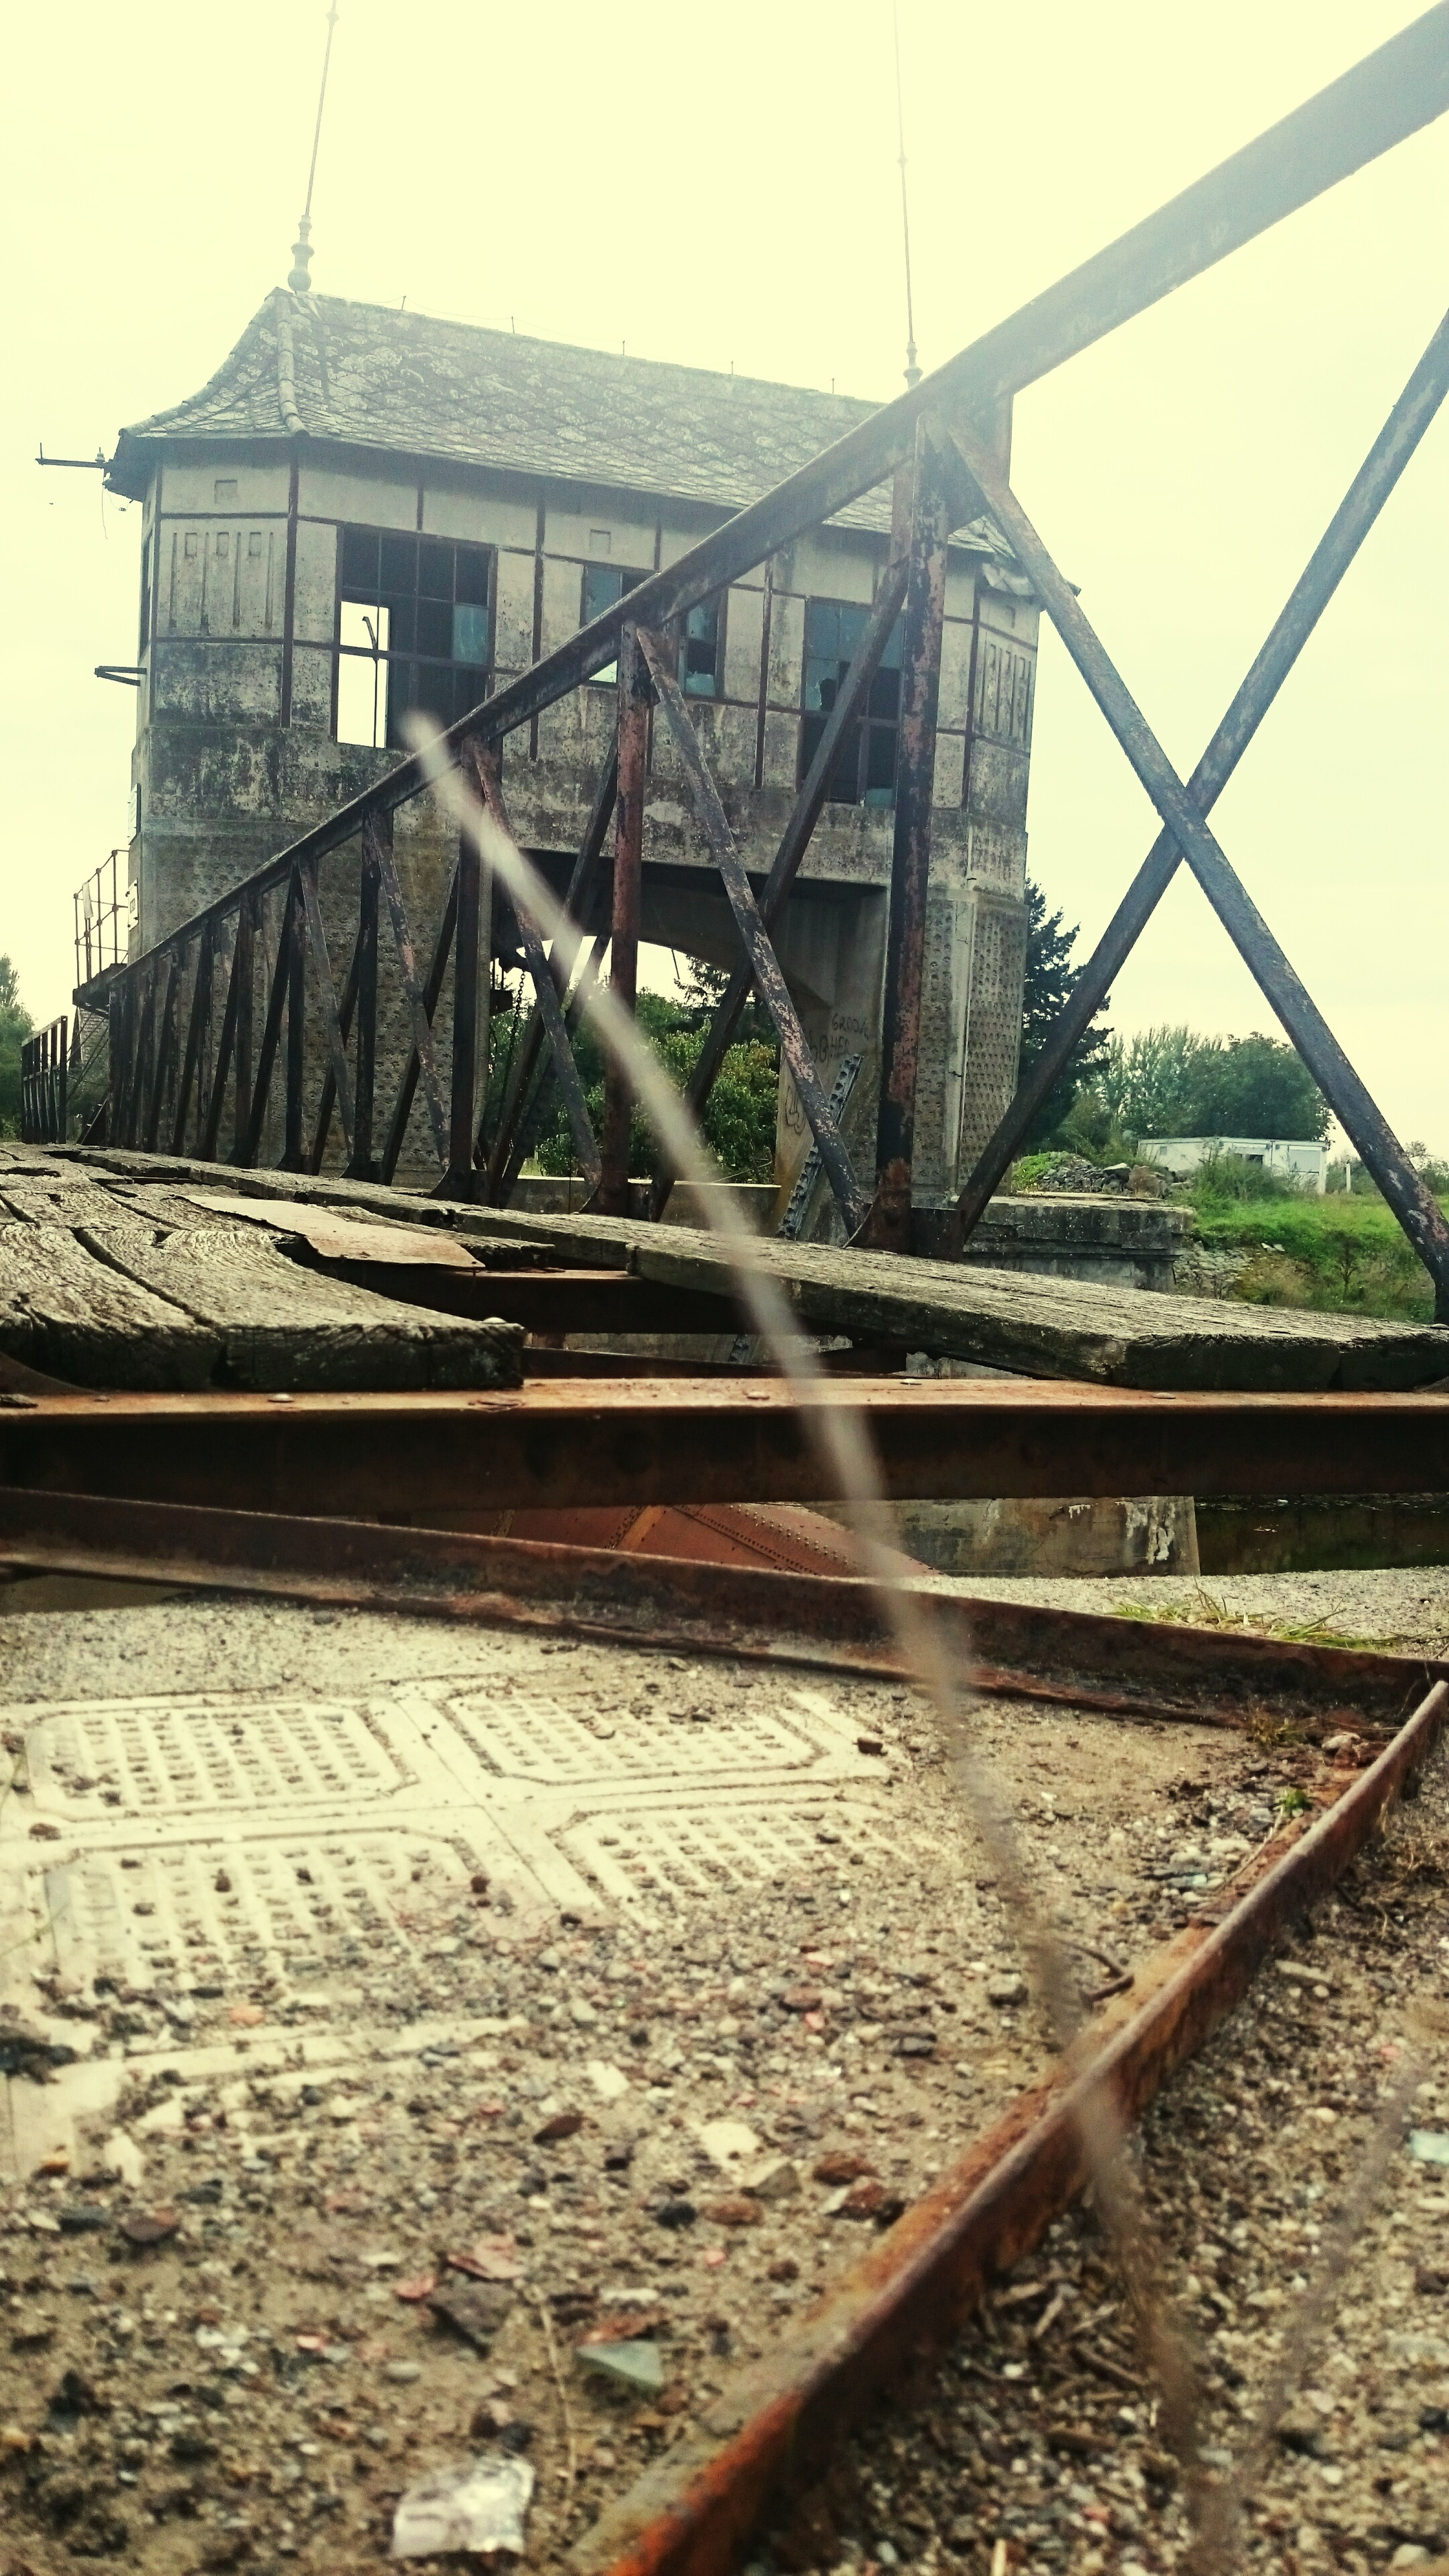 Structures Old Structures Abandoned Buildings Abandoned Places Silance NOthIng Empty Places Emptiness Beauty In Empty